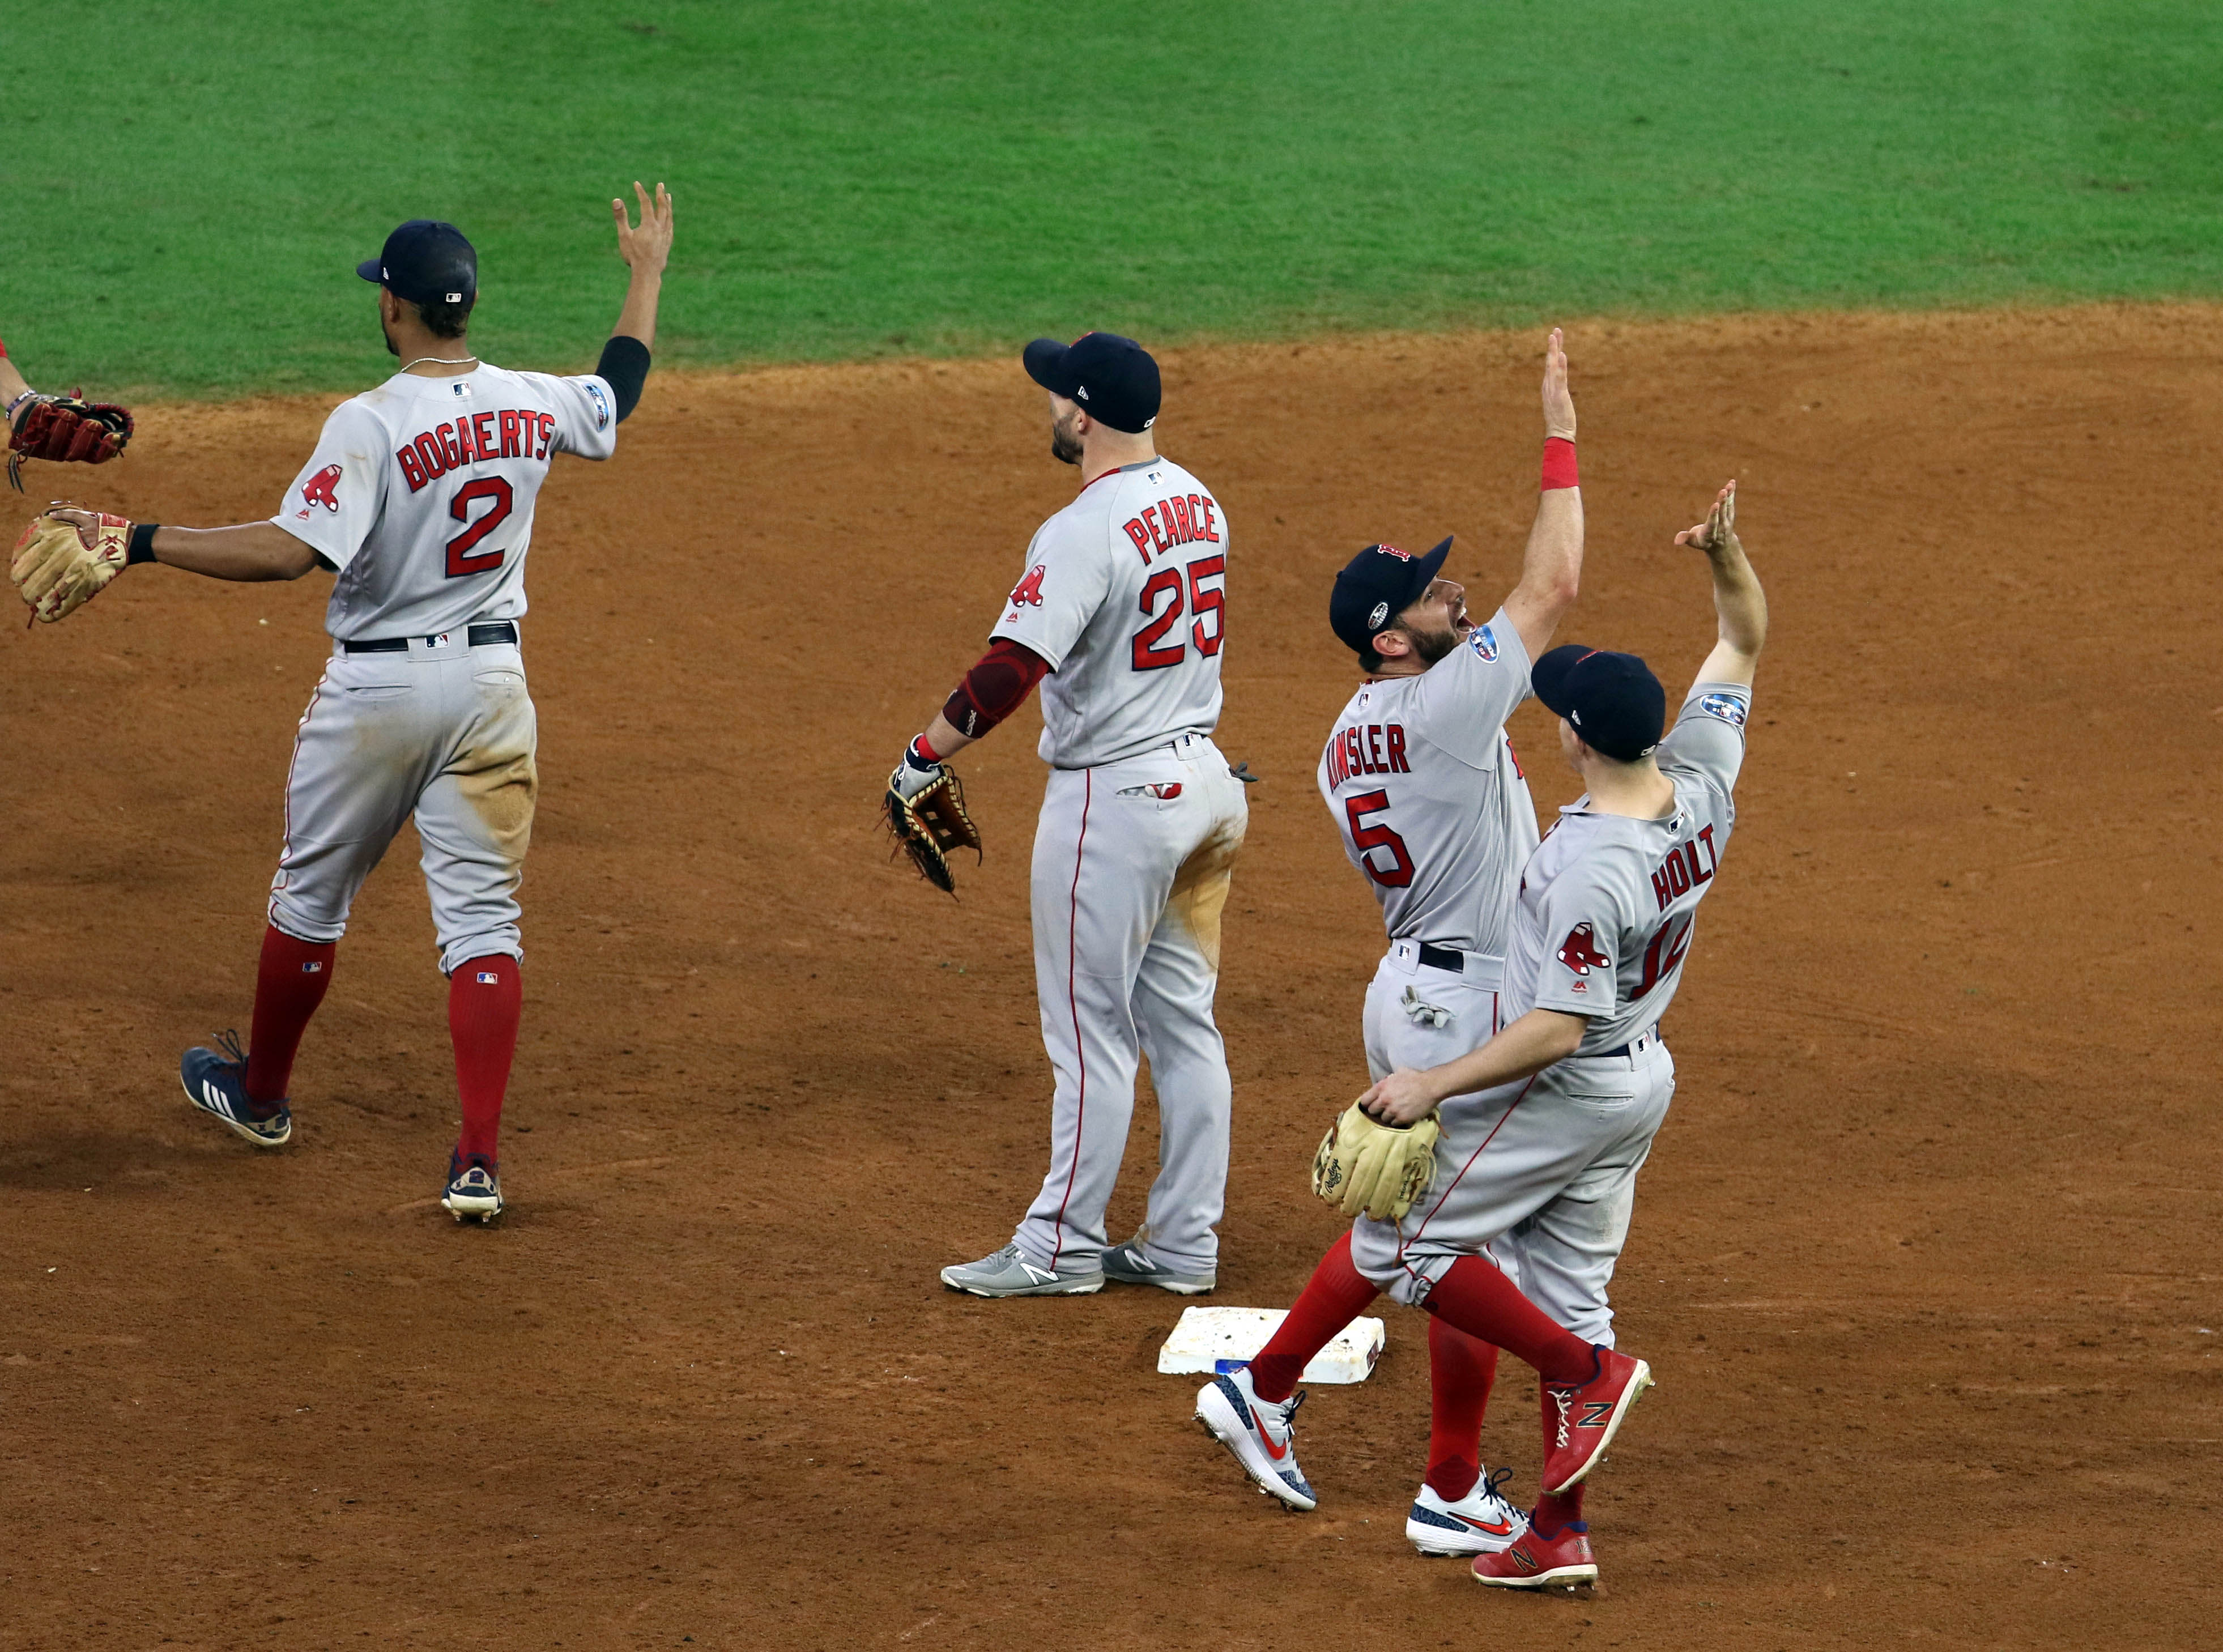 Red Sox-Astros ALCS Game 5: Watch live stream online, preview and prediction